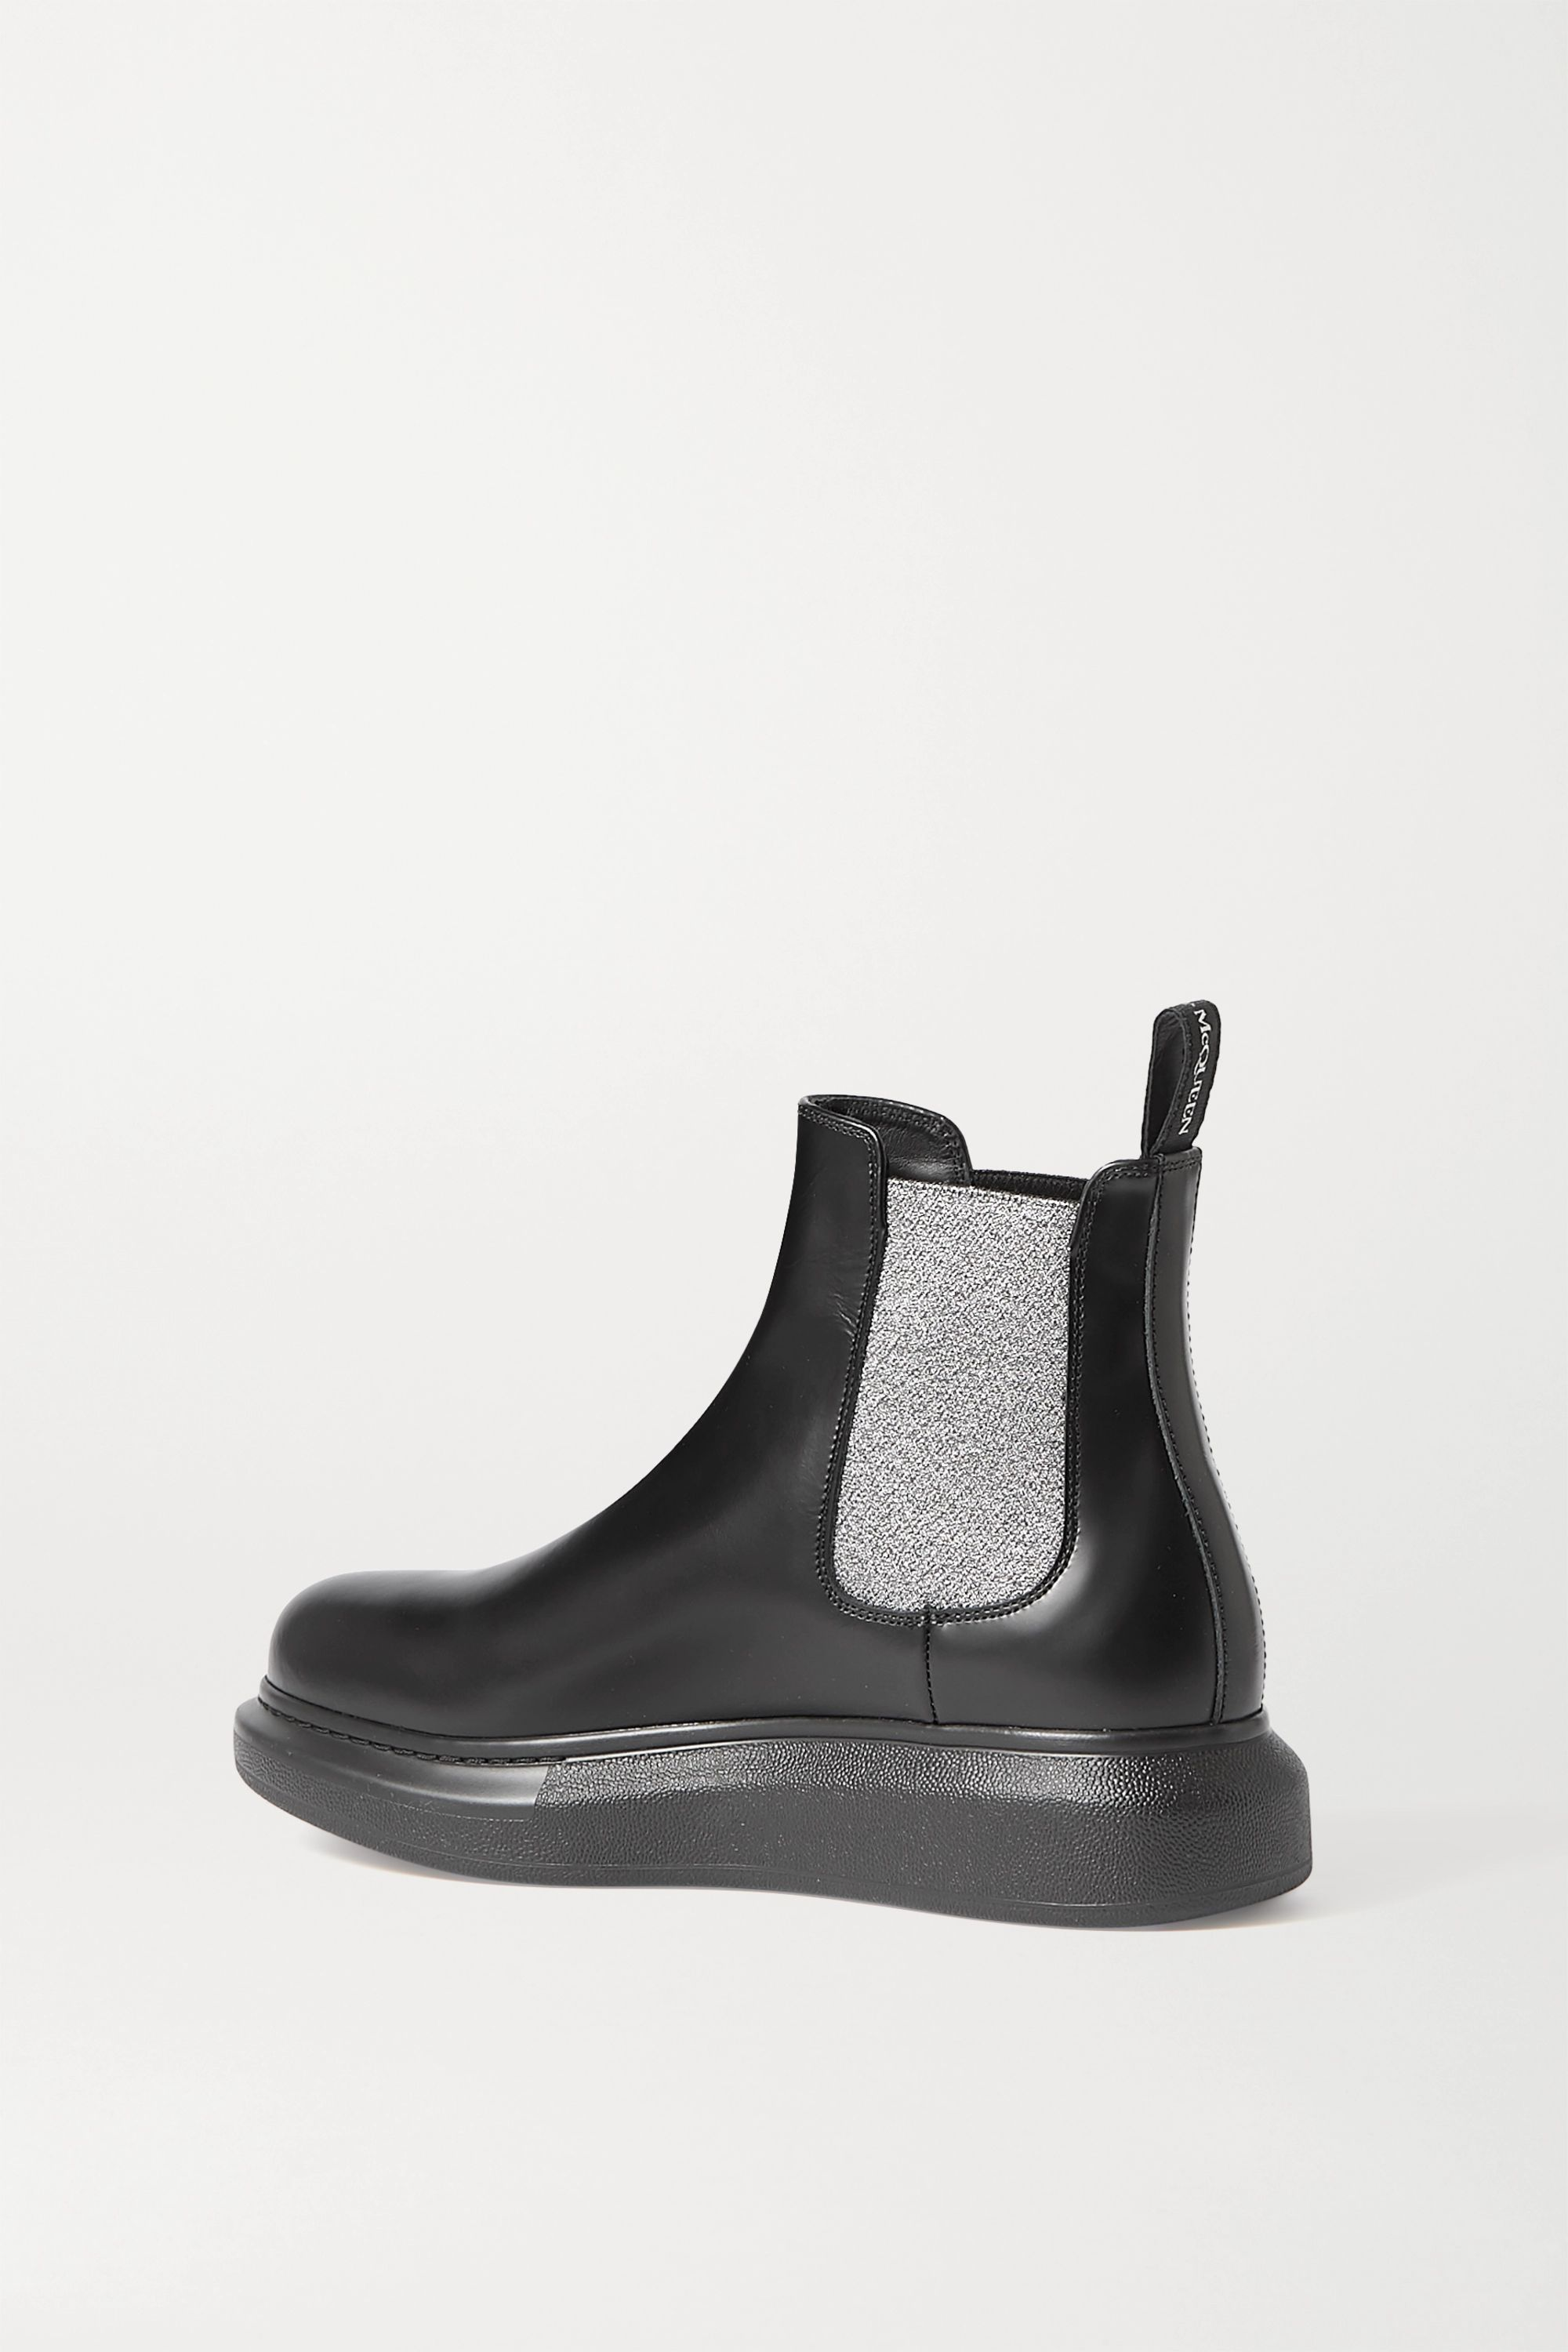 Black Glossed-leather Exaggerated-sole Chelsea Boots | Alexander Mcqueen